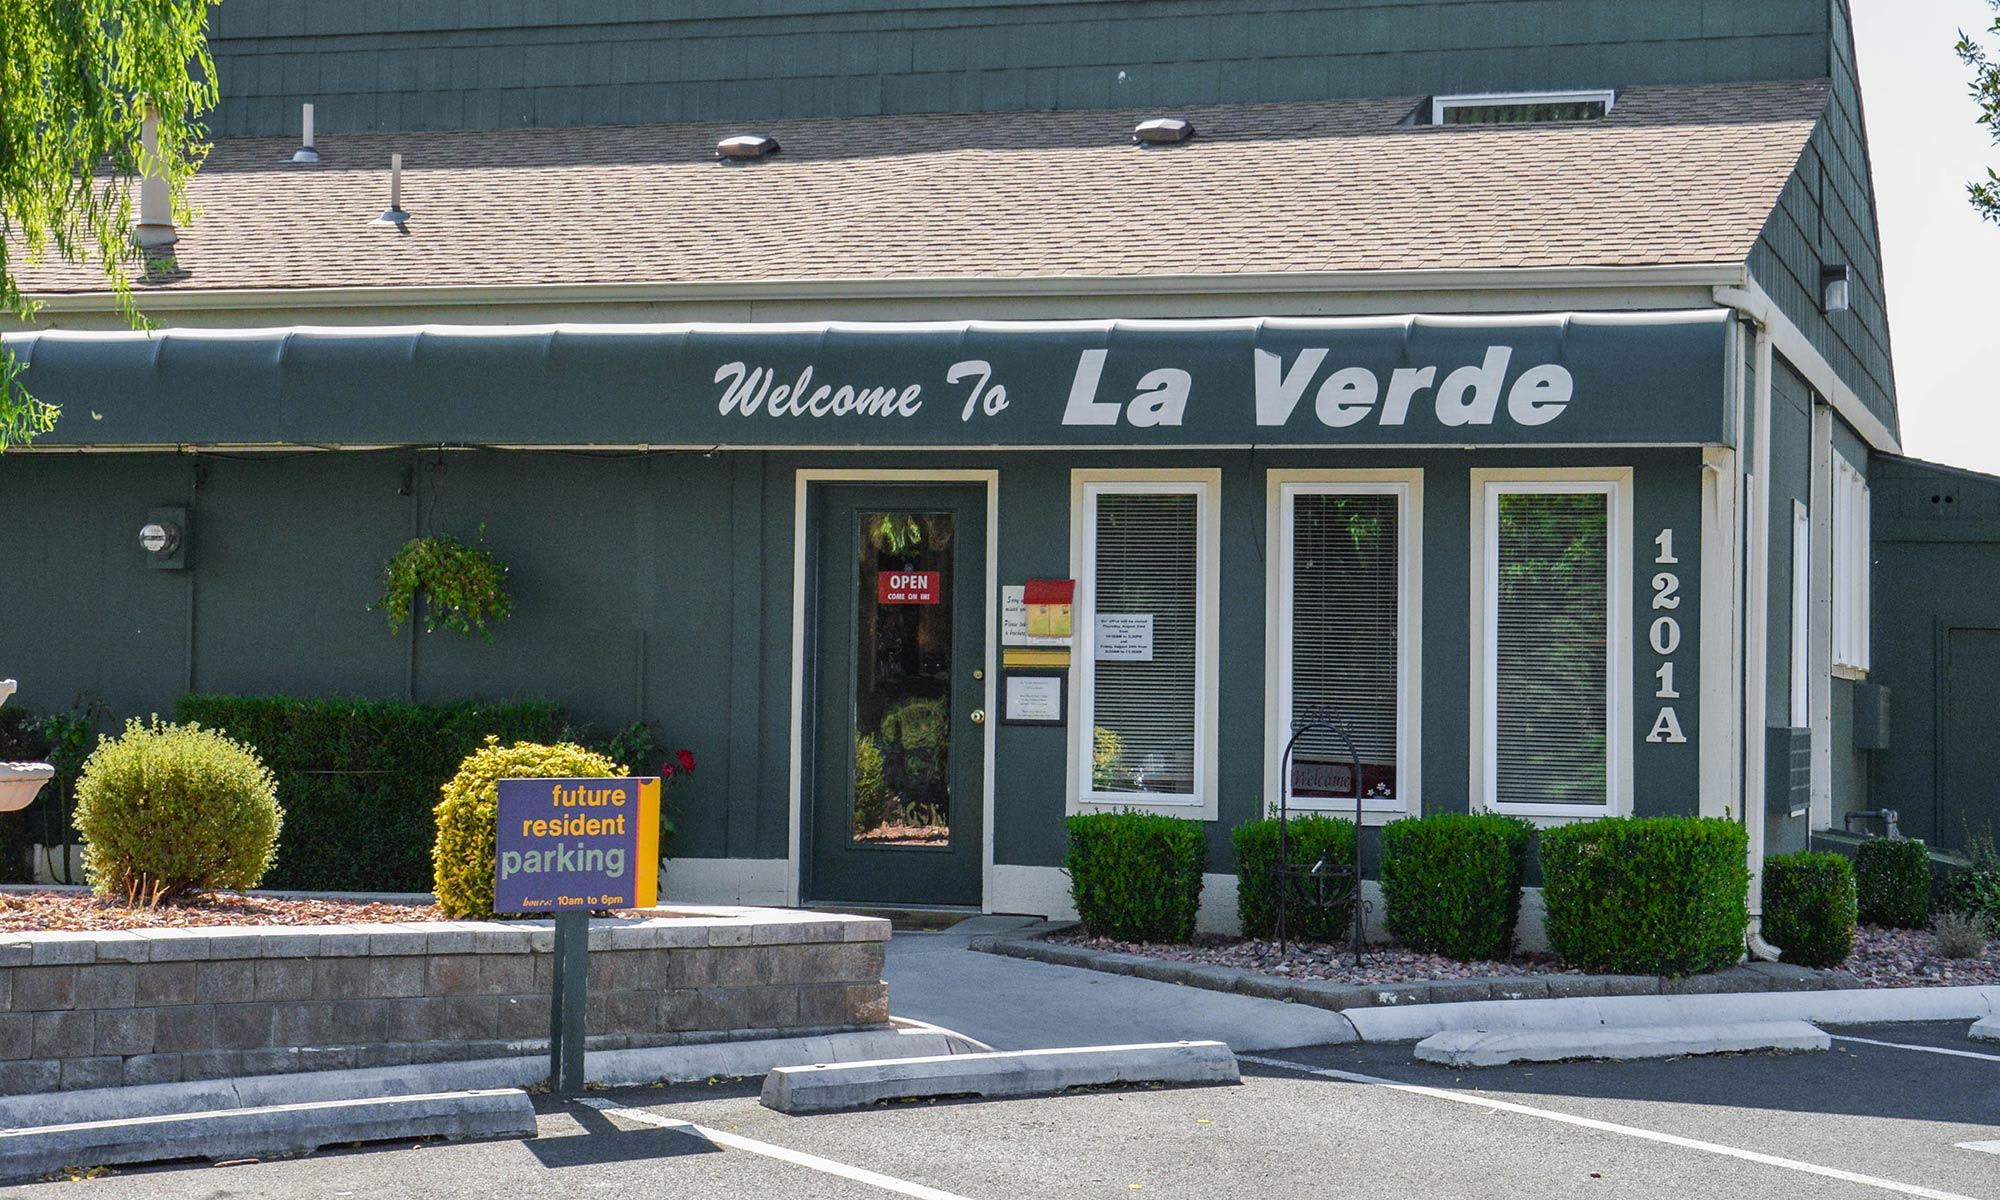 Learn more about our apartment community at La Verde Apartments in Richland.